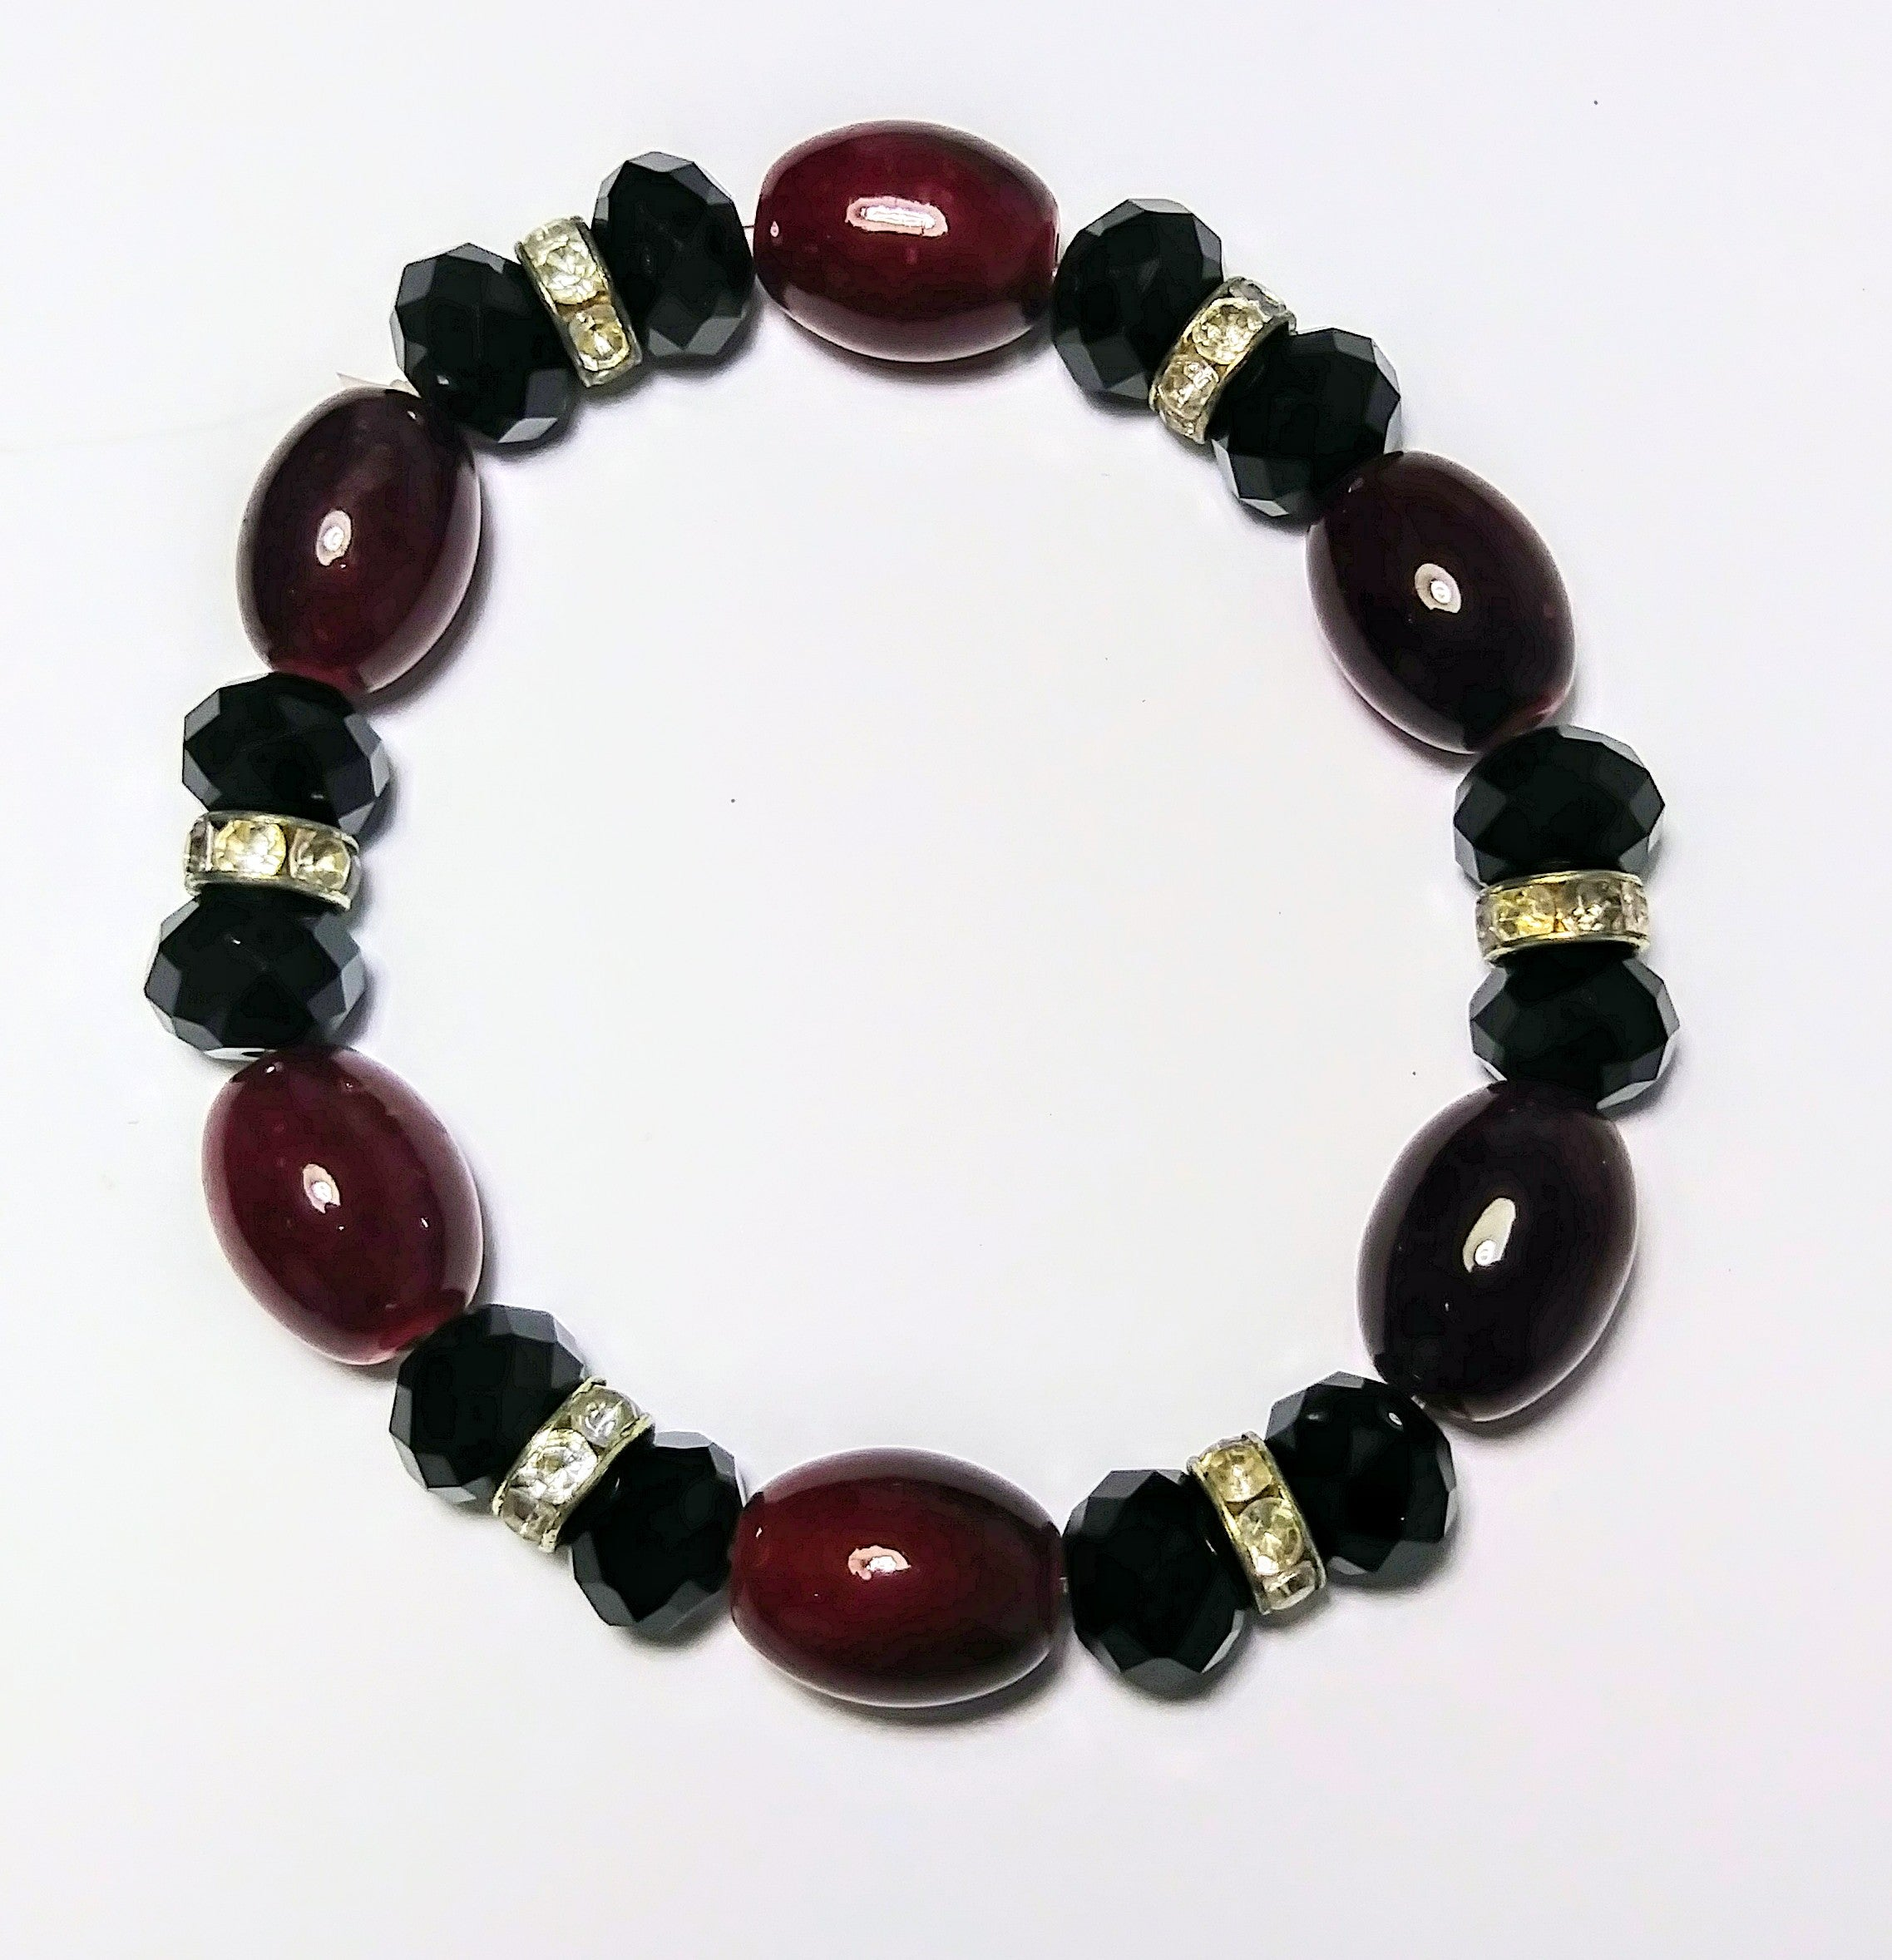 Black and red jade bean lucky charm bracelet